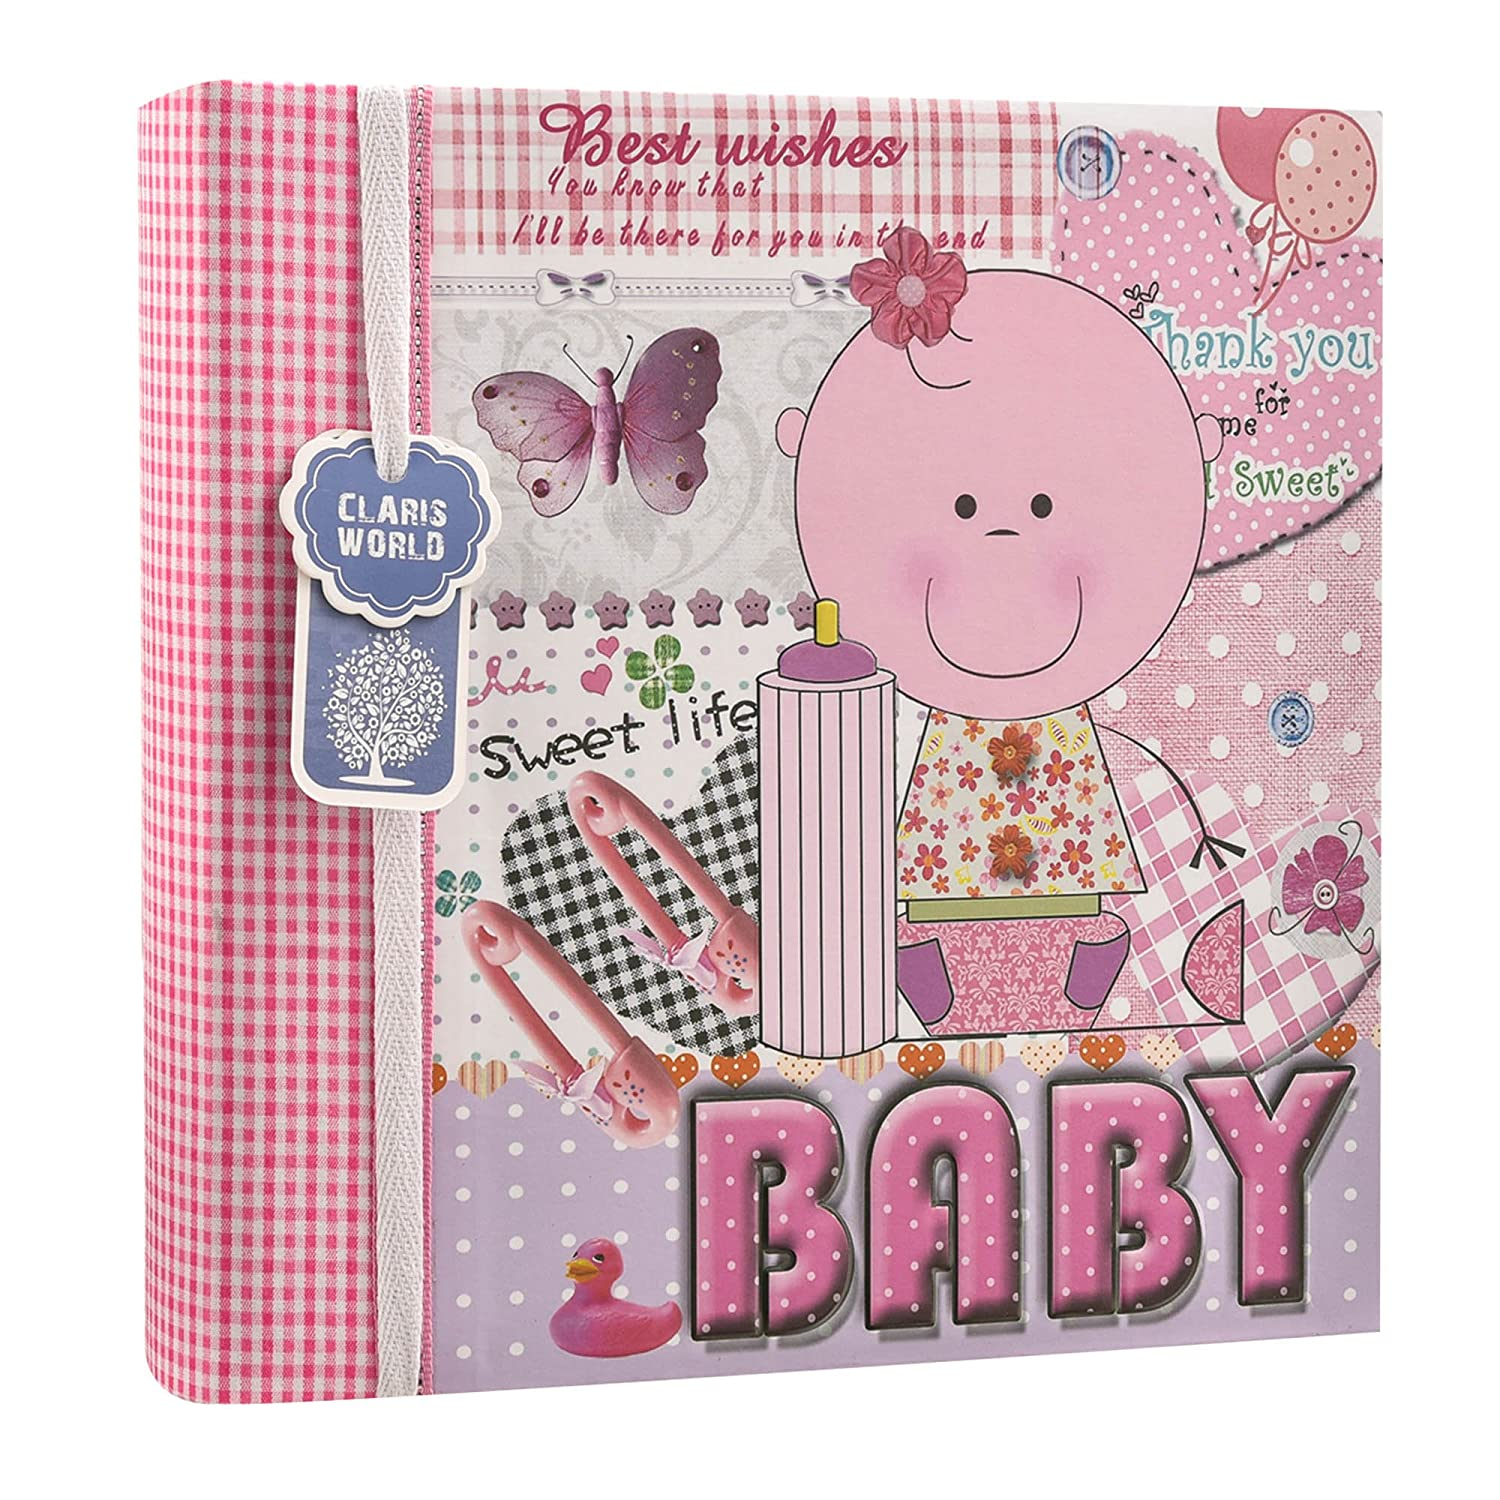 Arpan Baby Boy Blue Memo Slip In Photo Album 200 6'x4'' Photos Ideal Gift (BLUE) AL-9772